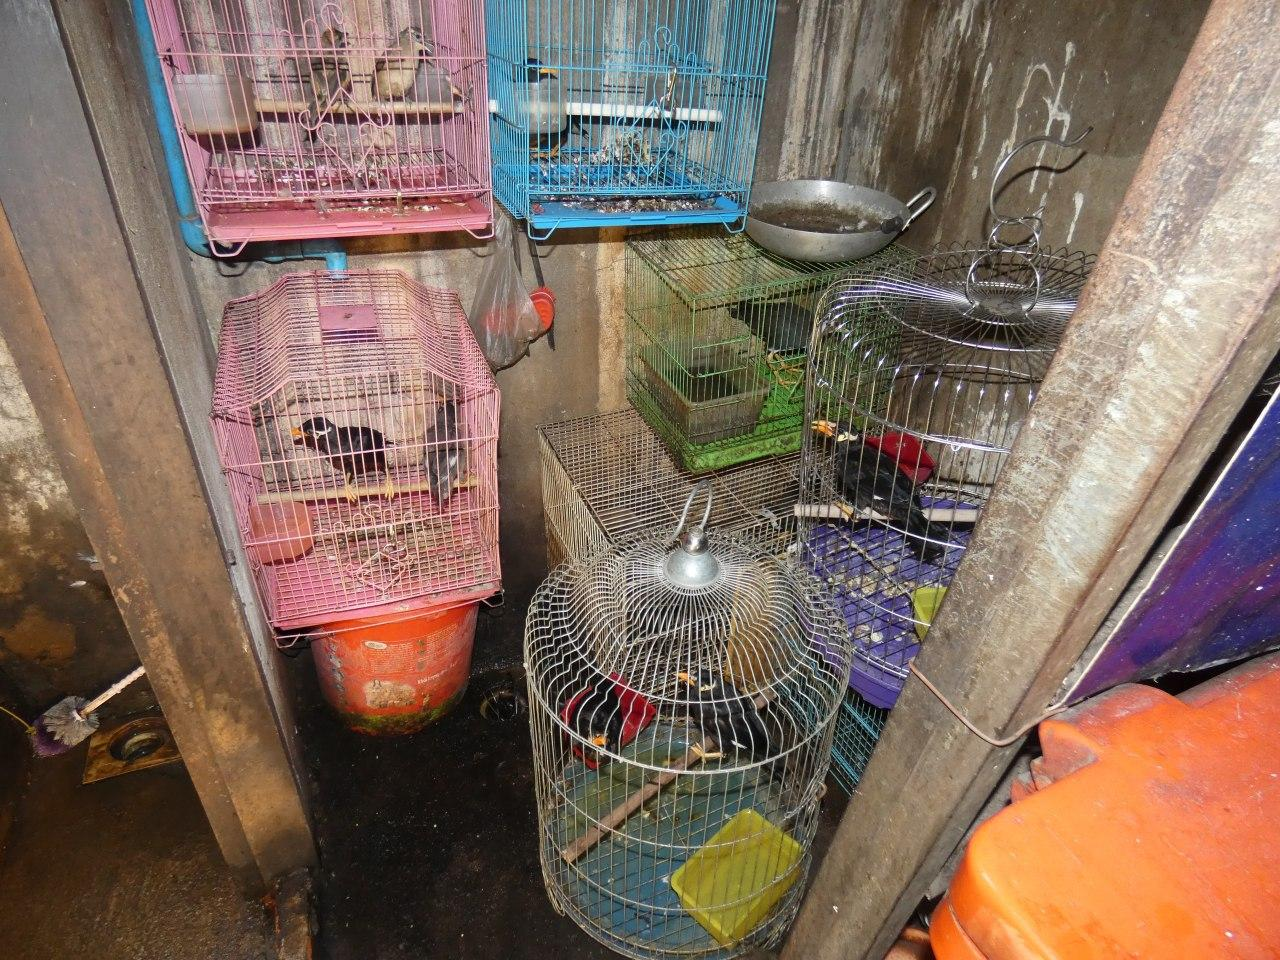 Southeast Asia's thriving illegal bird trade